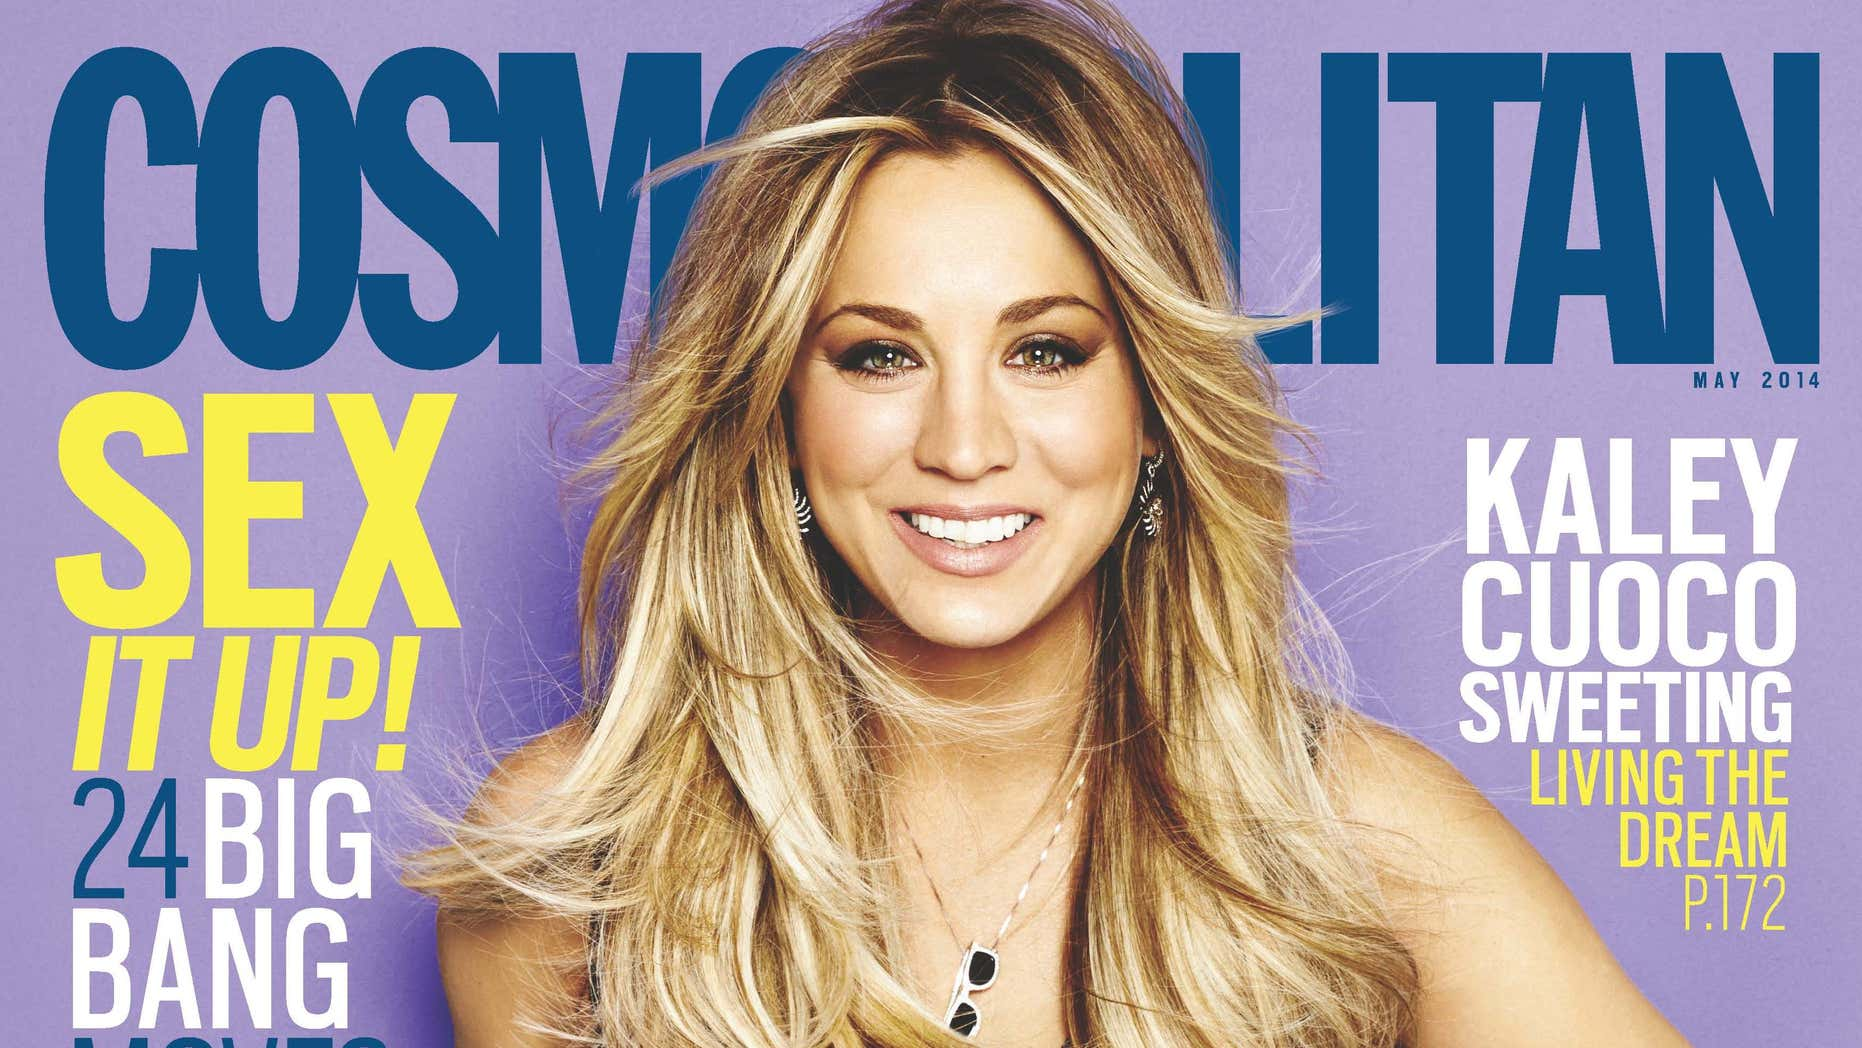 Kaley Cuoco-Sweeting appears on the May cover of Cosmopolitan, on newsstands nationwide April 8, 2014.